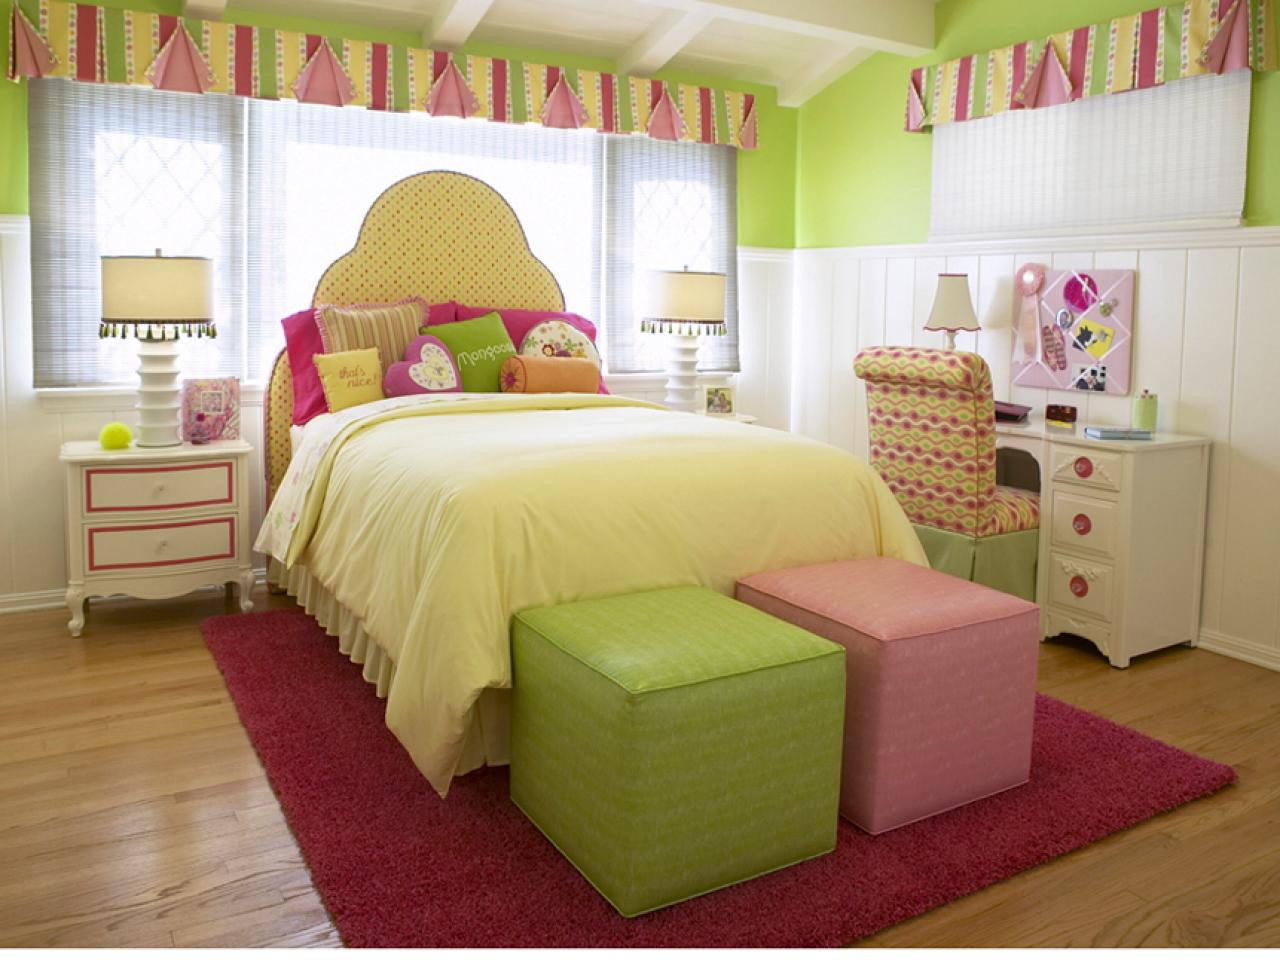 Comfy Girls Bedroom With Refreshing Atmosphere Represented By Green  Painting And Furnishing